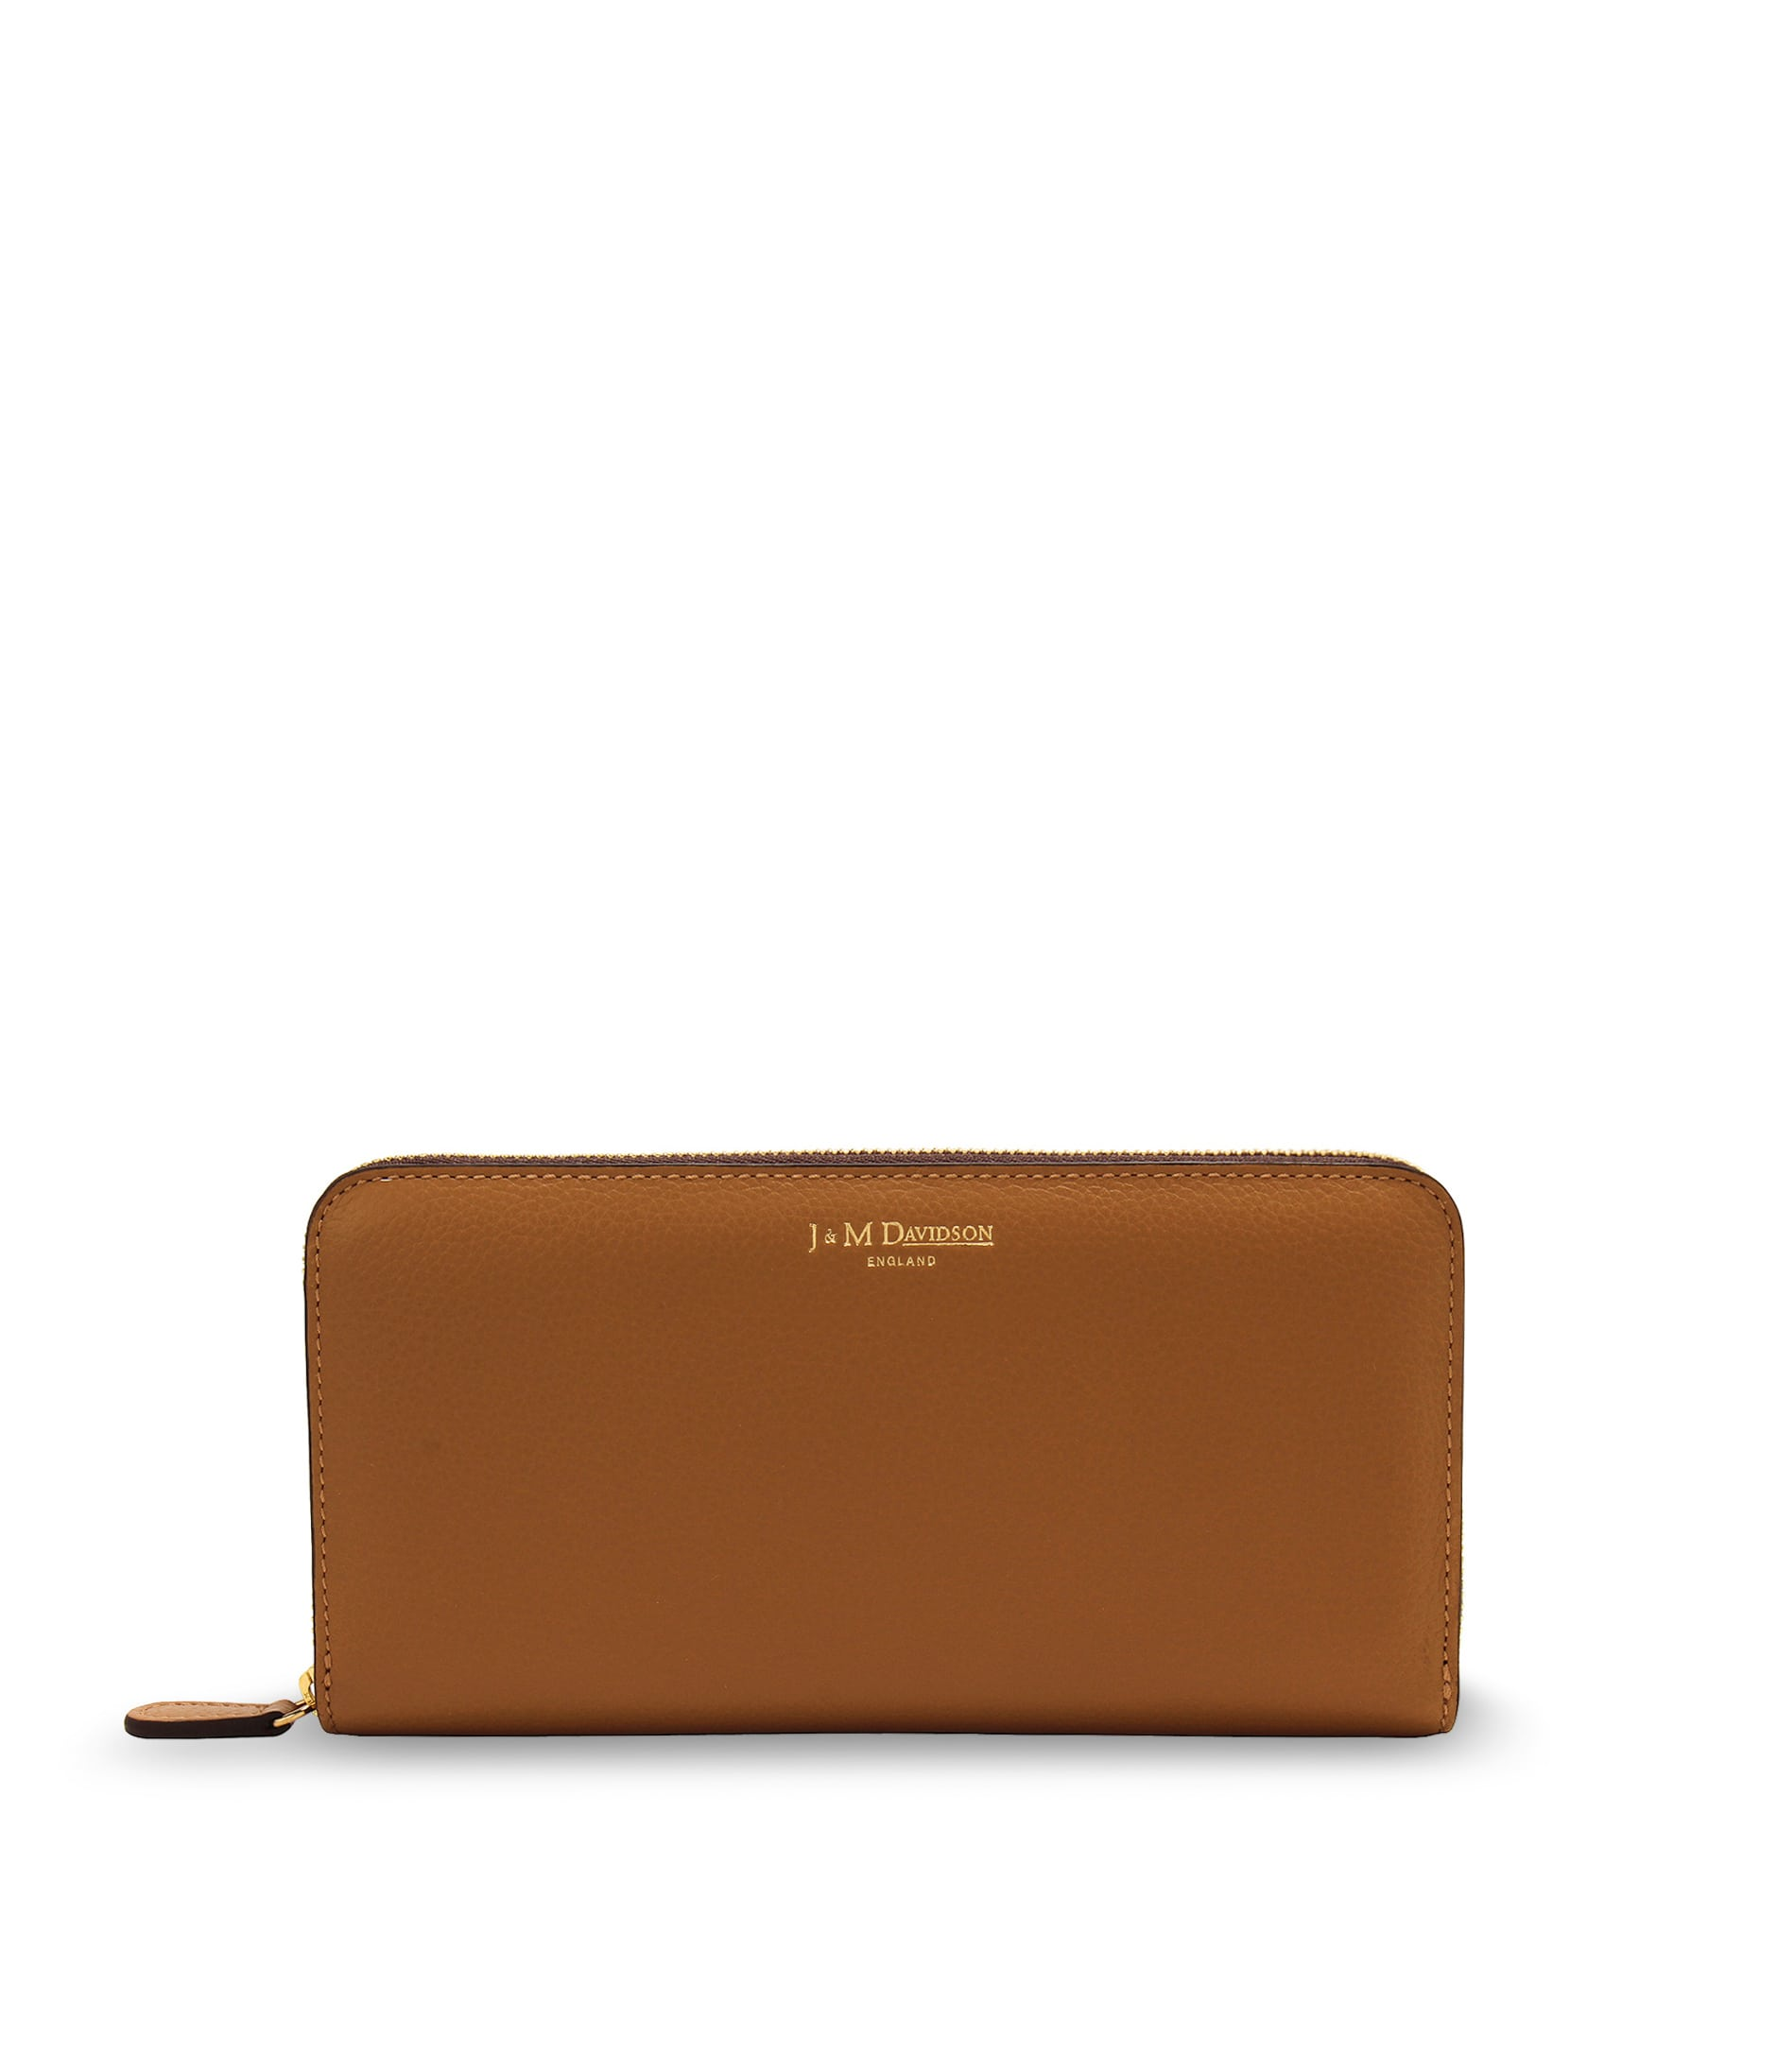 LONG ZIP WALLET 詳細画像 MOROCCAN BROWN 1